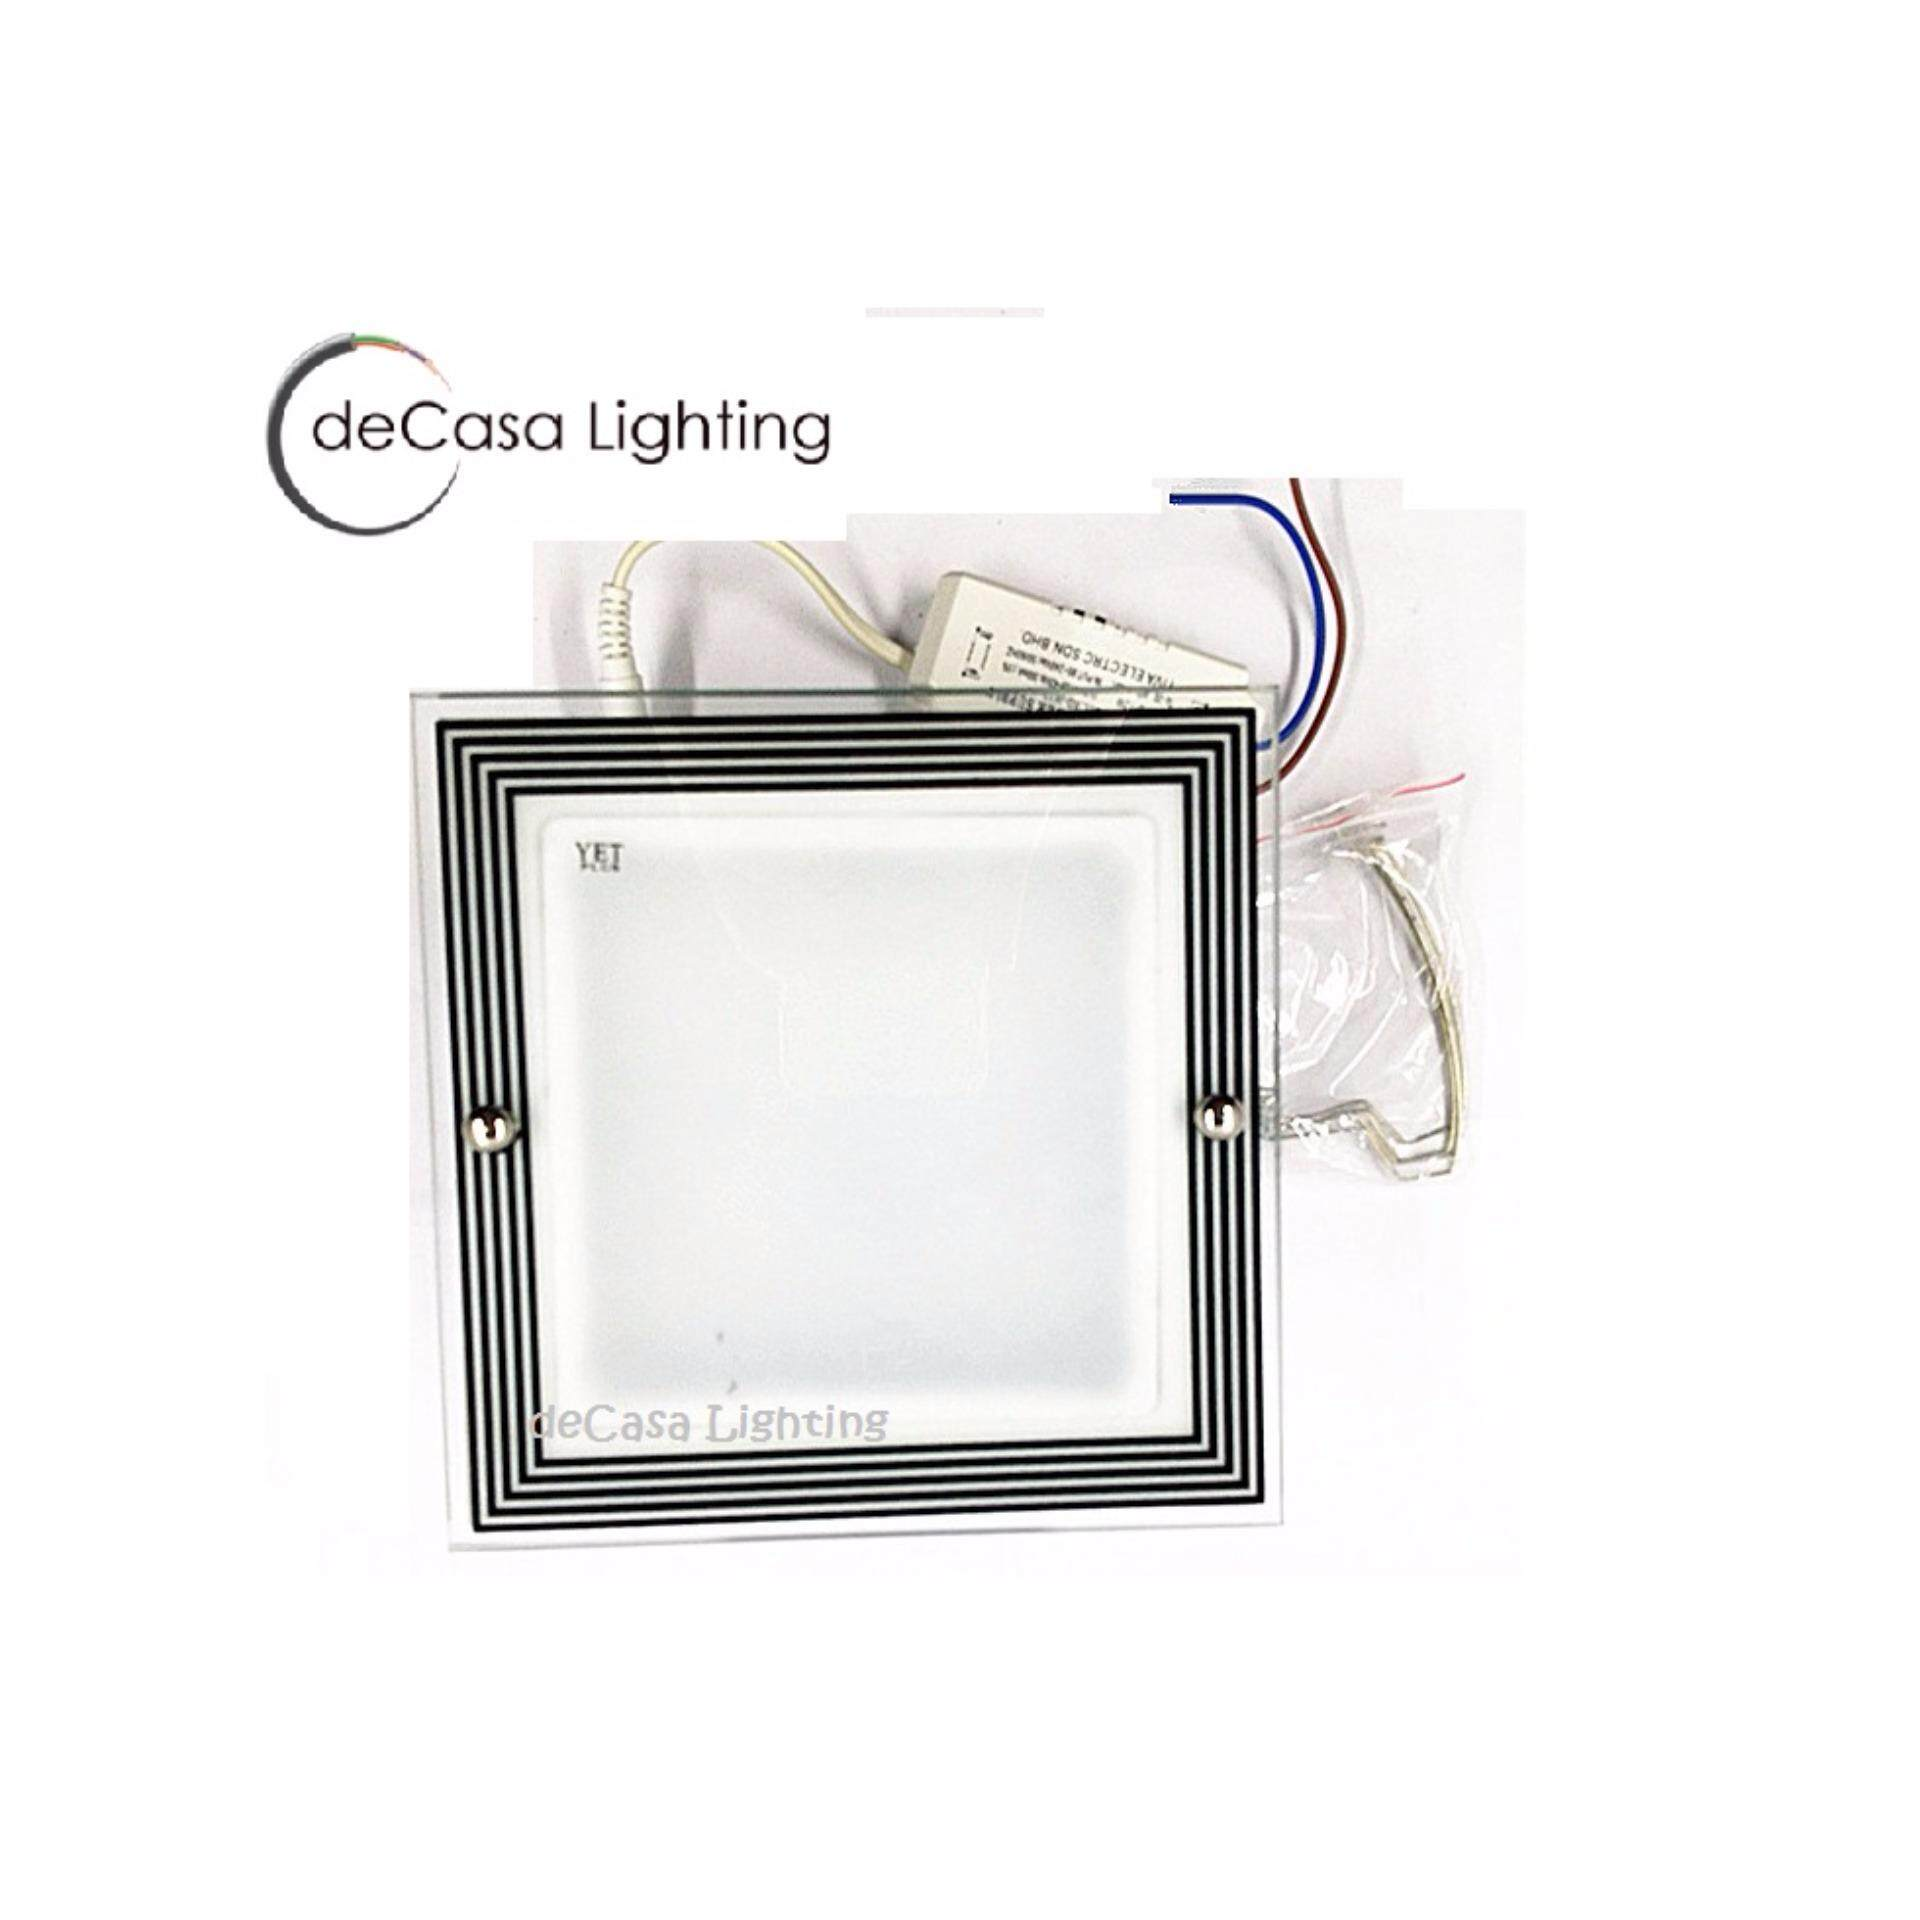 Stock Clearance DECASA Modern Designer LED Recessed Downlight Decasa Lighting 6 Inch Square Downlight Ceiling Light (YV-LED-8096-12W-SQ-DL)